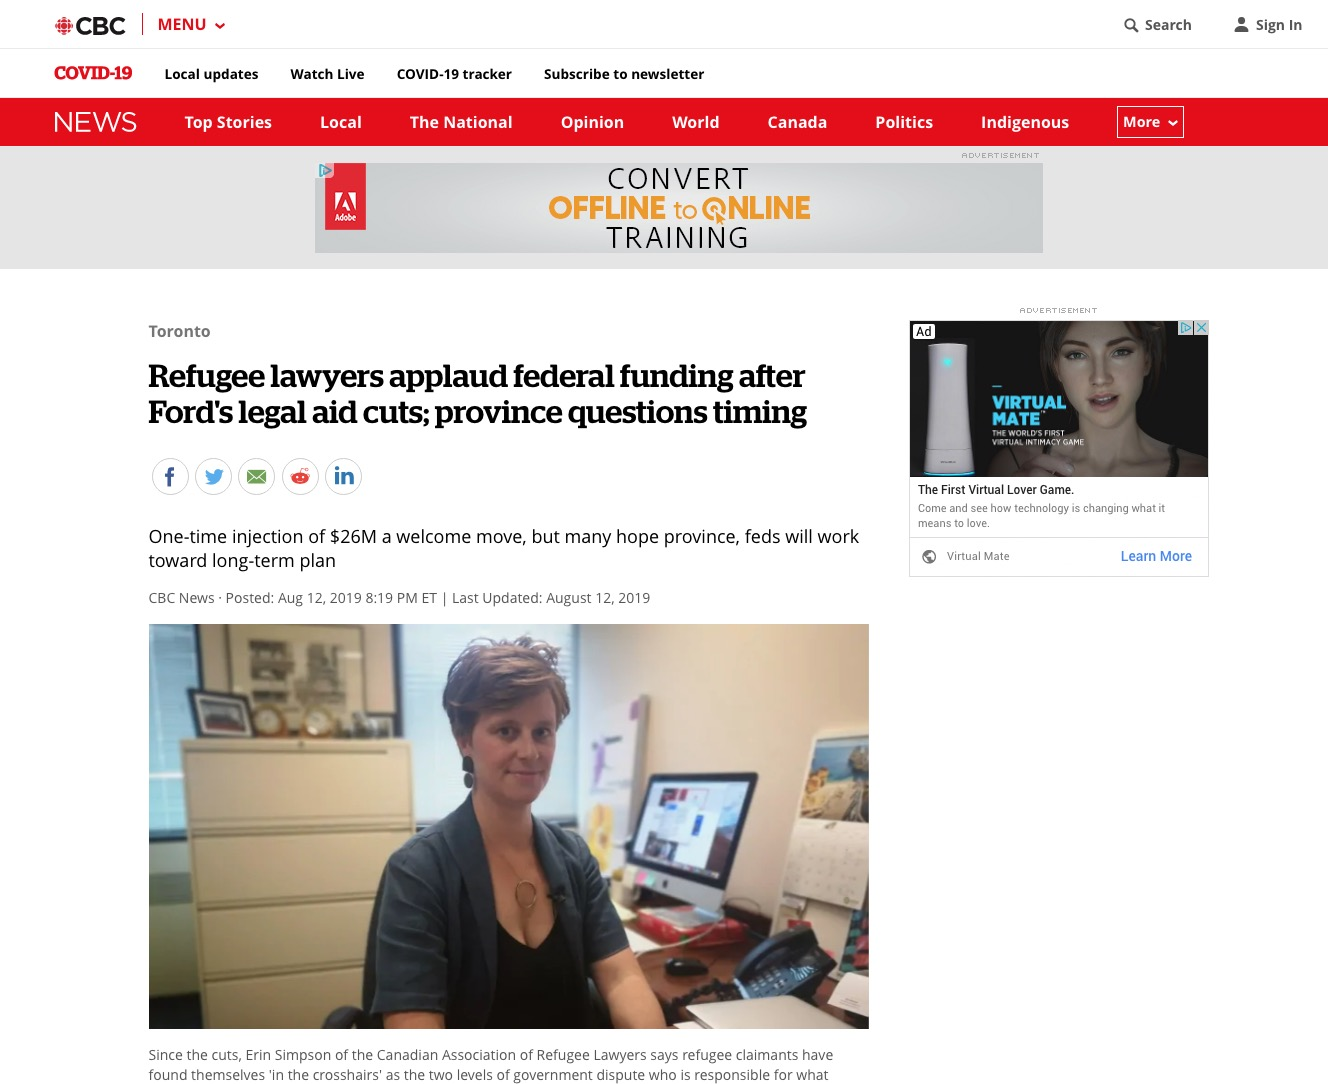 Erin Simpson – Refugee lawyers applaud federal funding after Ford's legal aid cuts